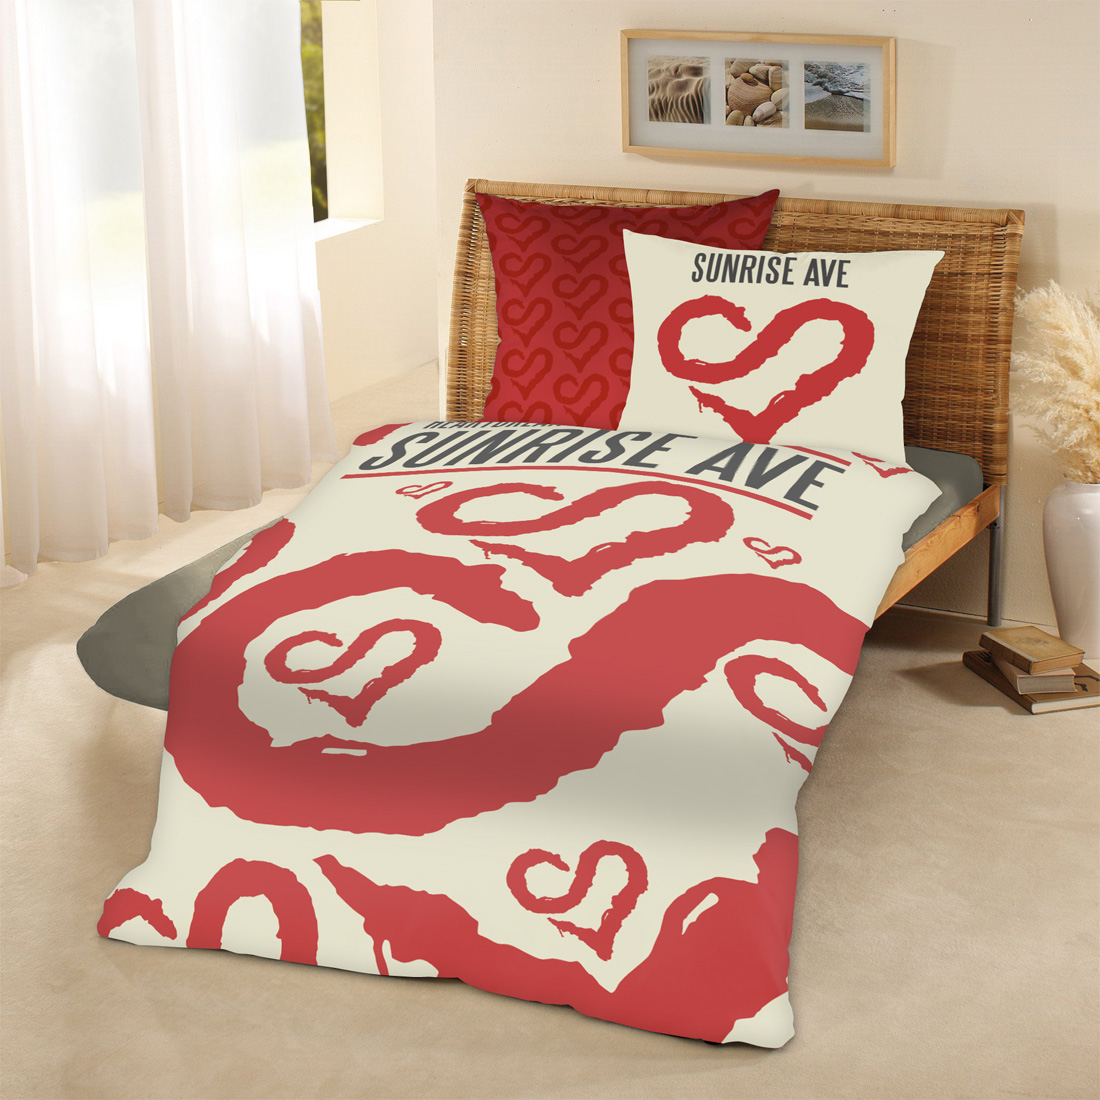 Bravado Heartbreak Century Sunrise Avenue Bed Linen